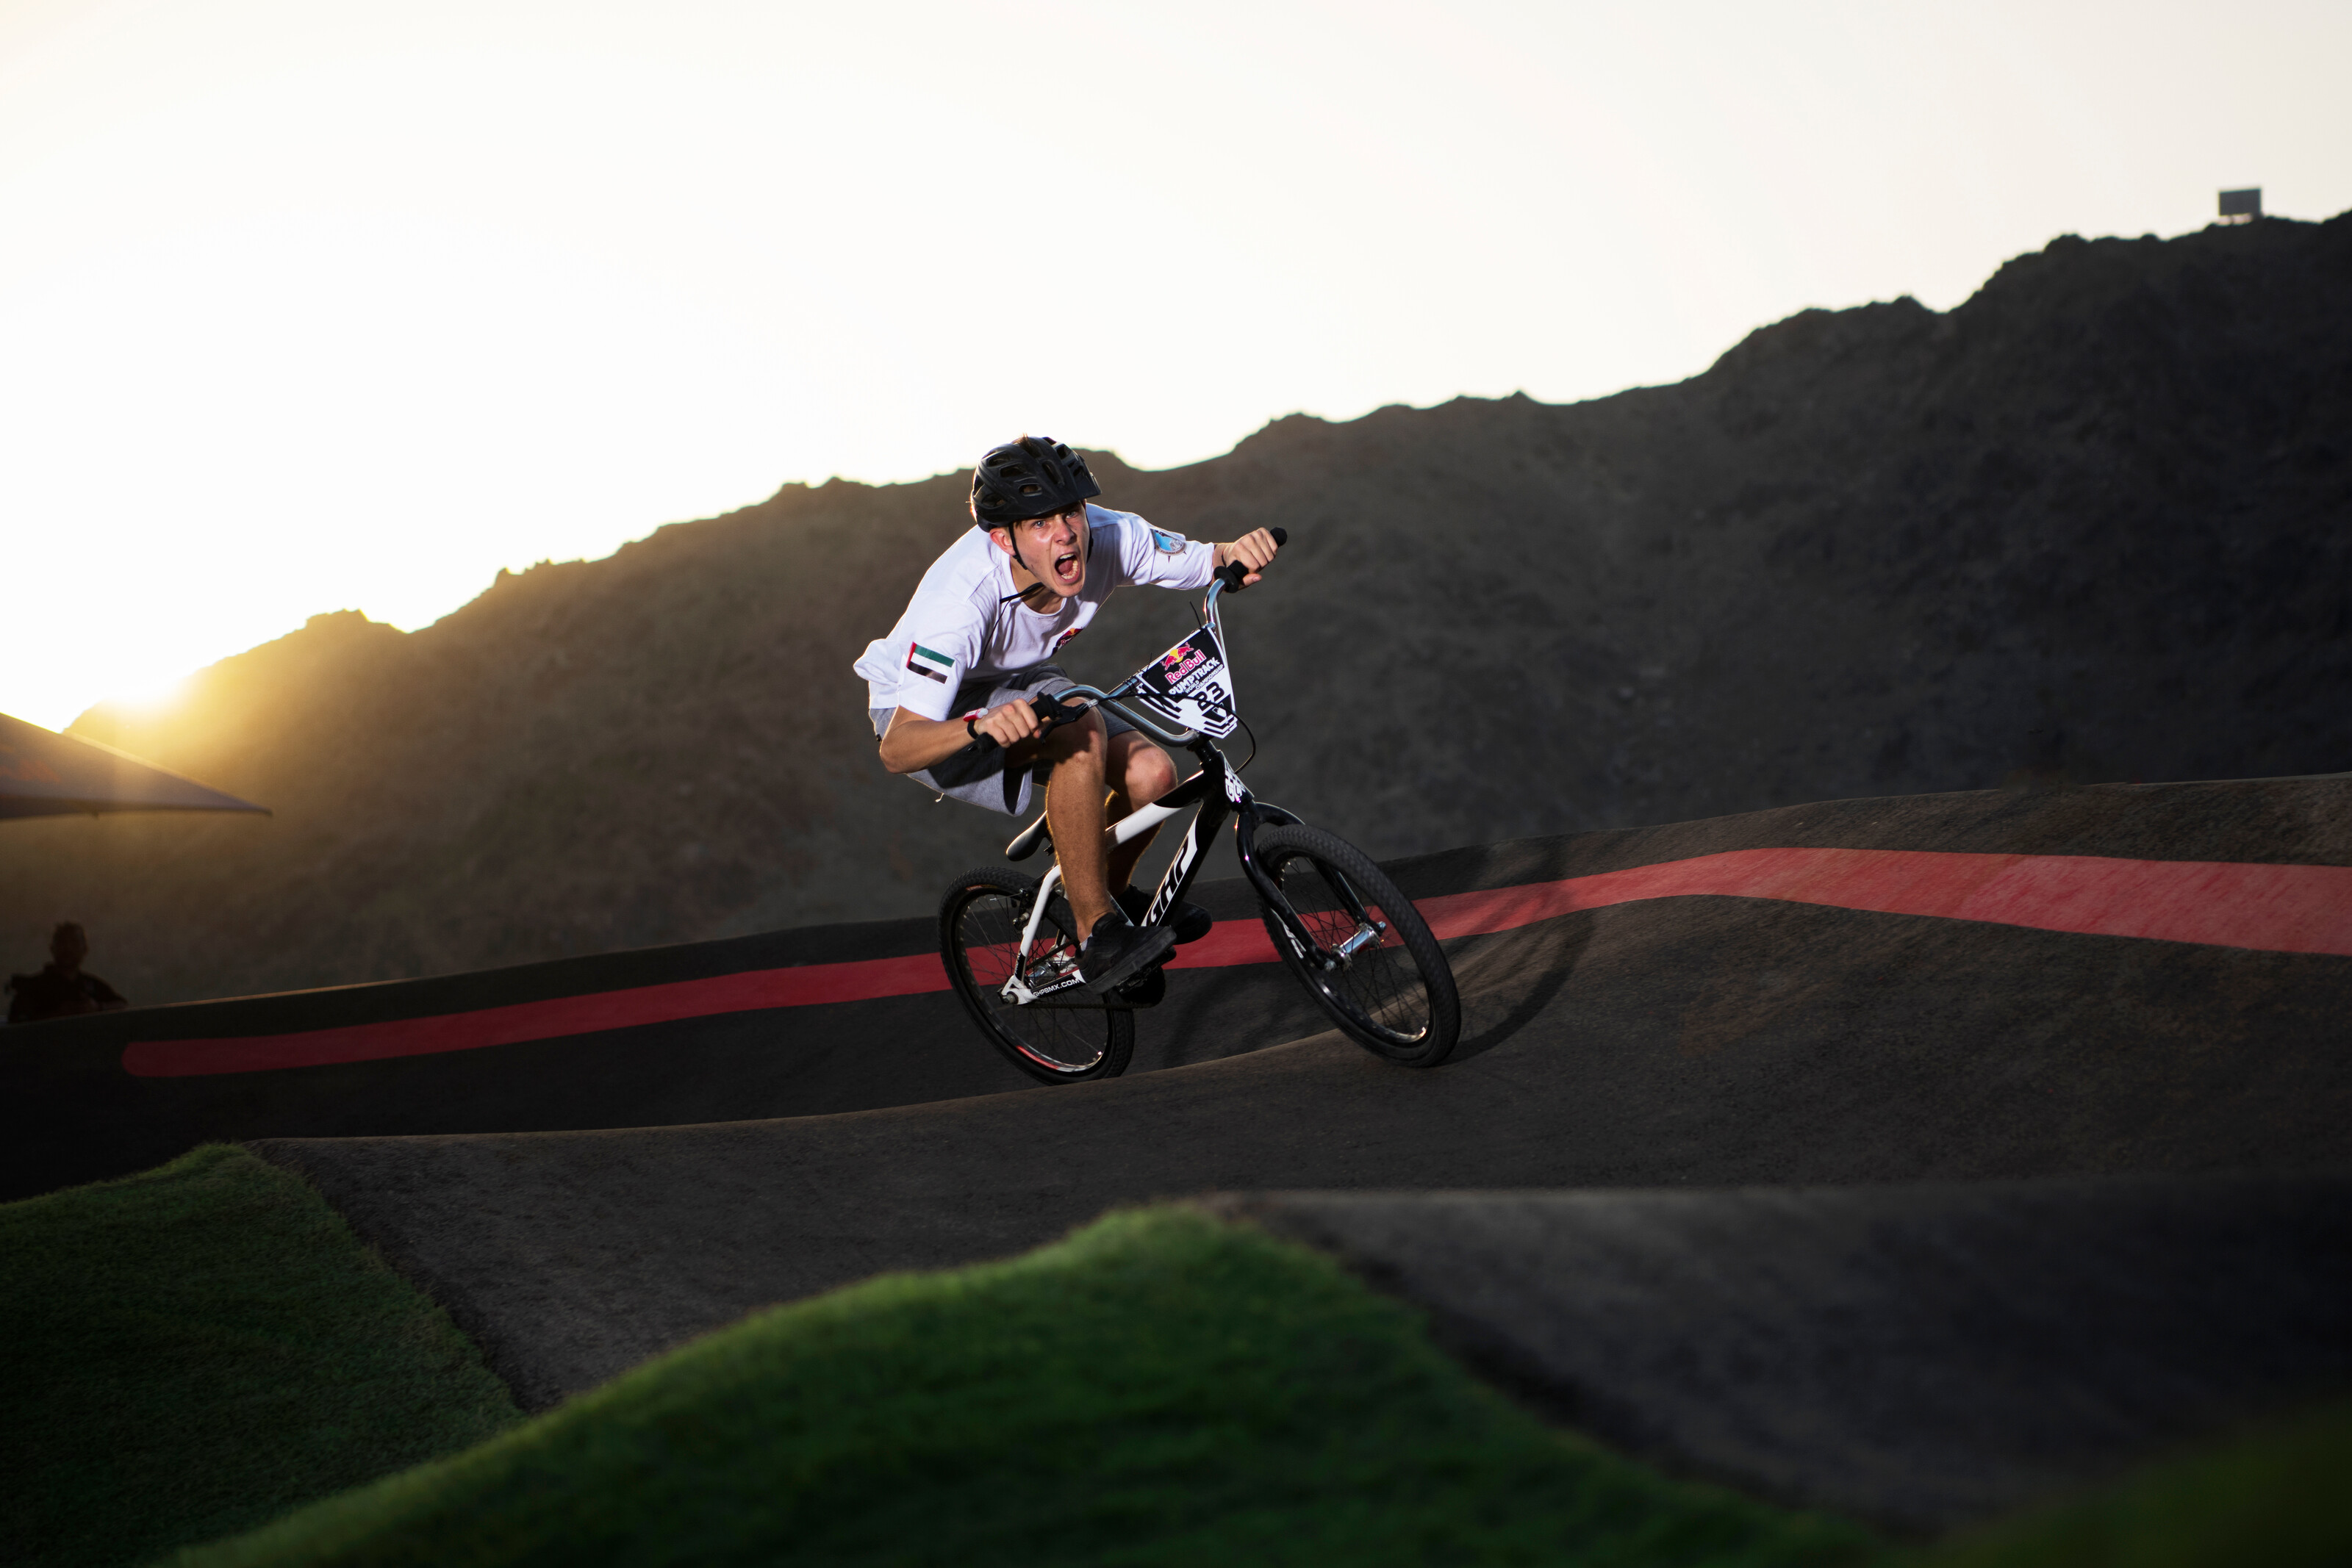 The first Red Bull Pump Track World Championship Qualifier in the UAE delivers on all levels.